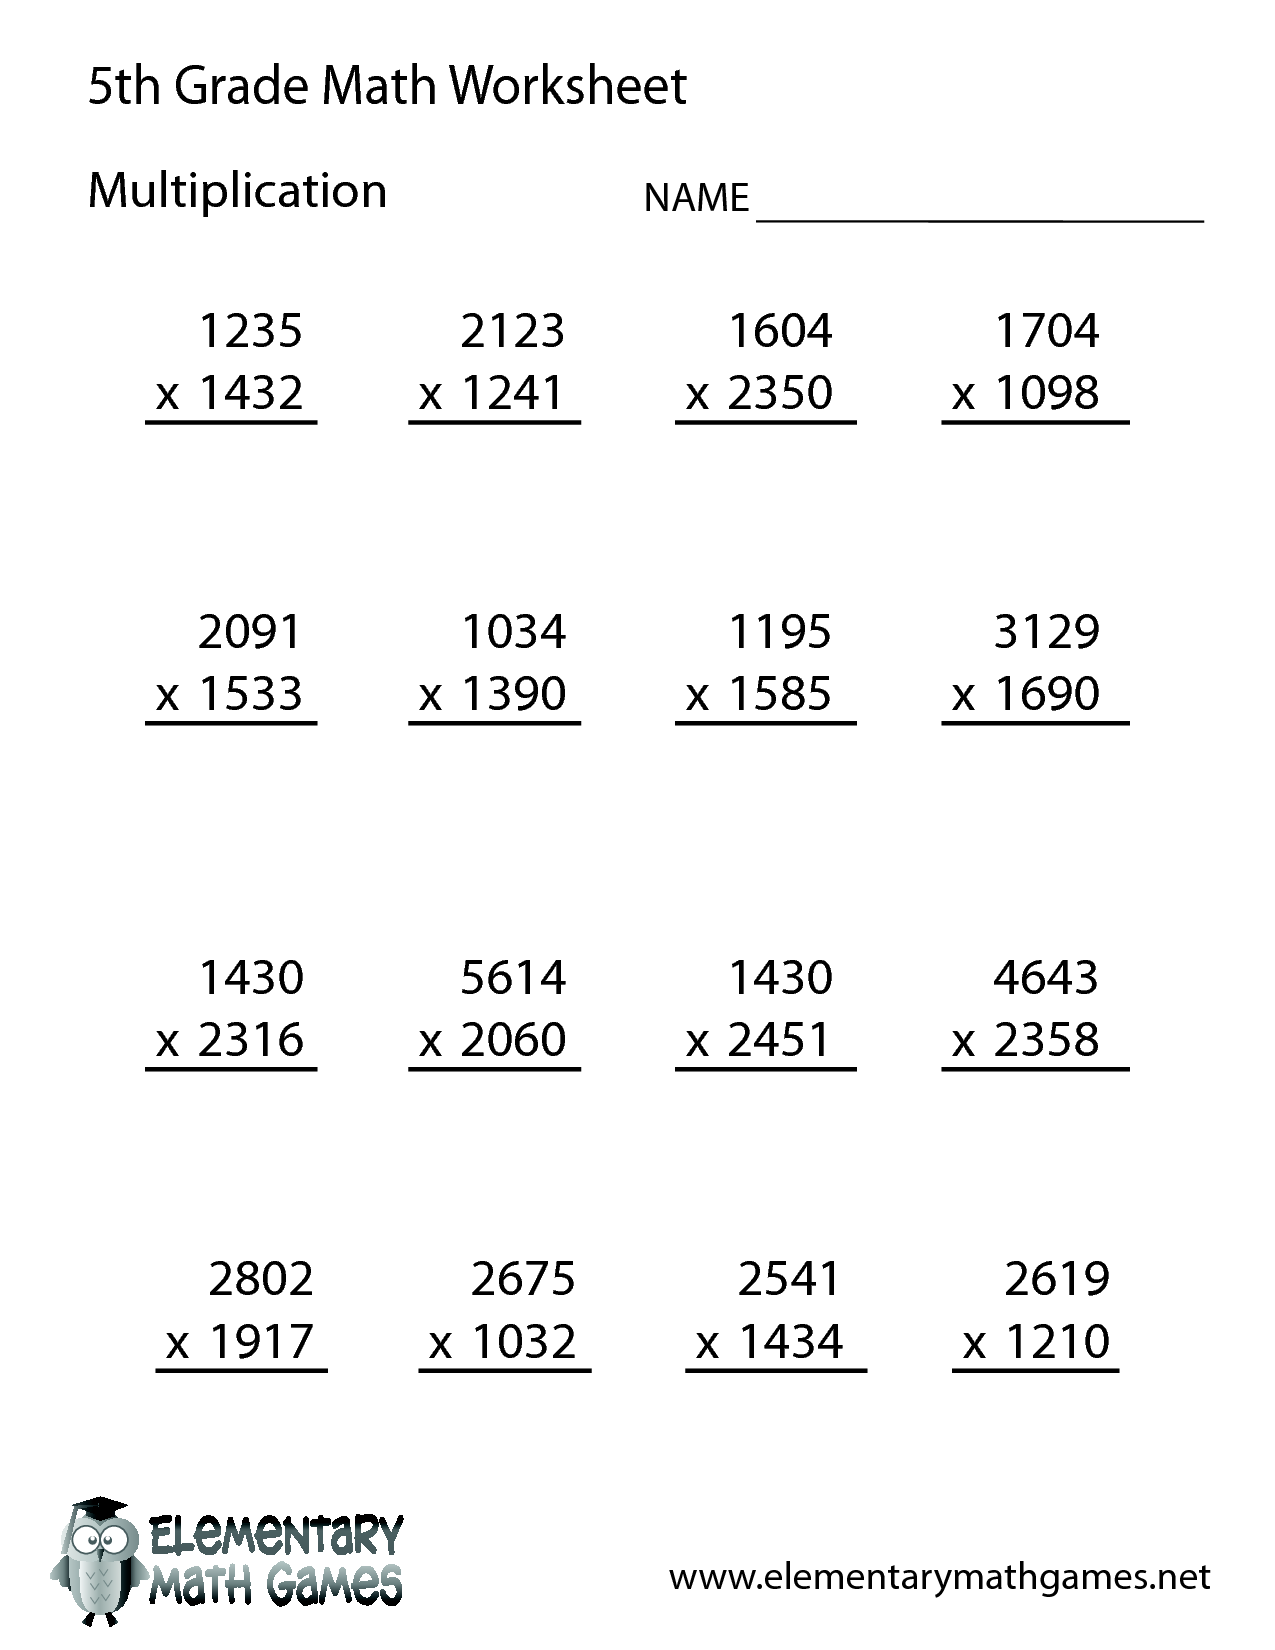 Free Math Printable Worksheets For 5th Grade 817032